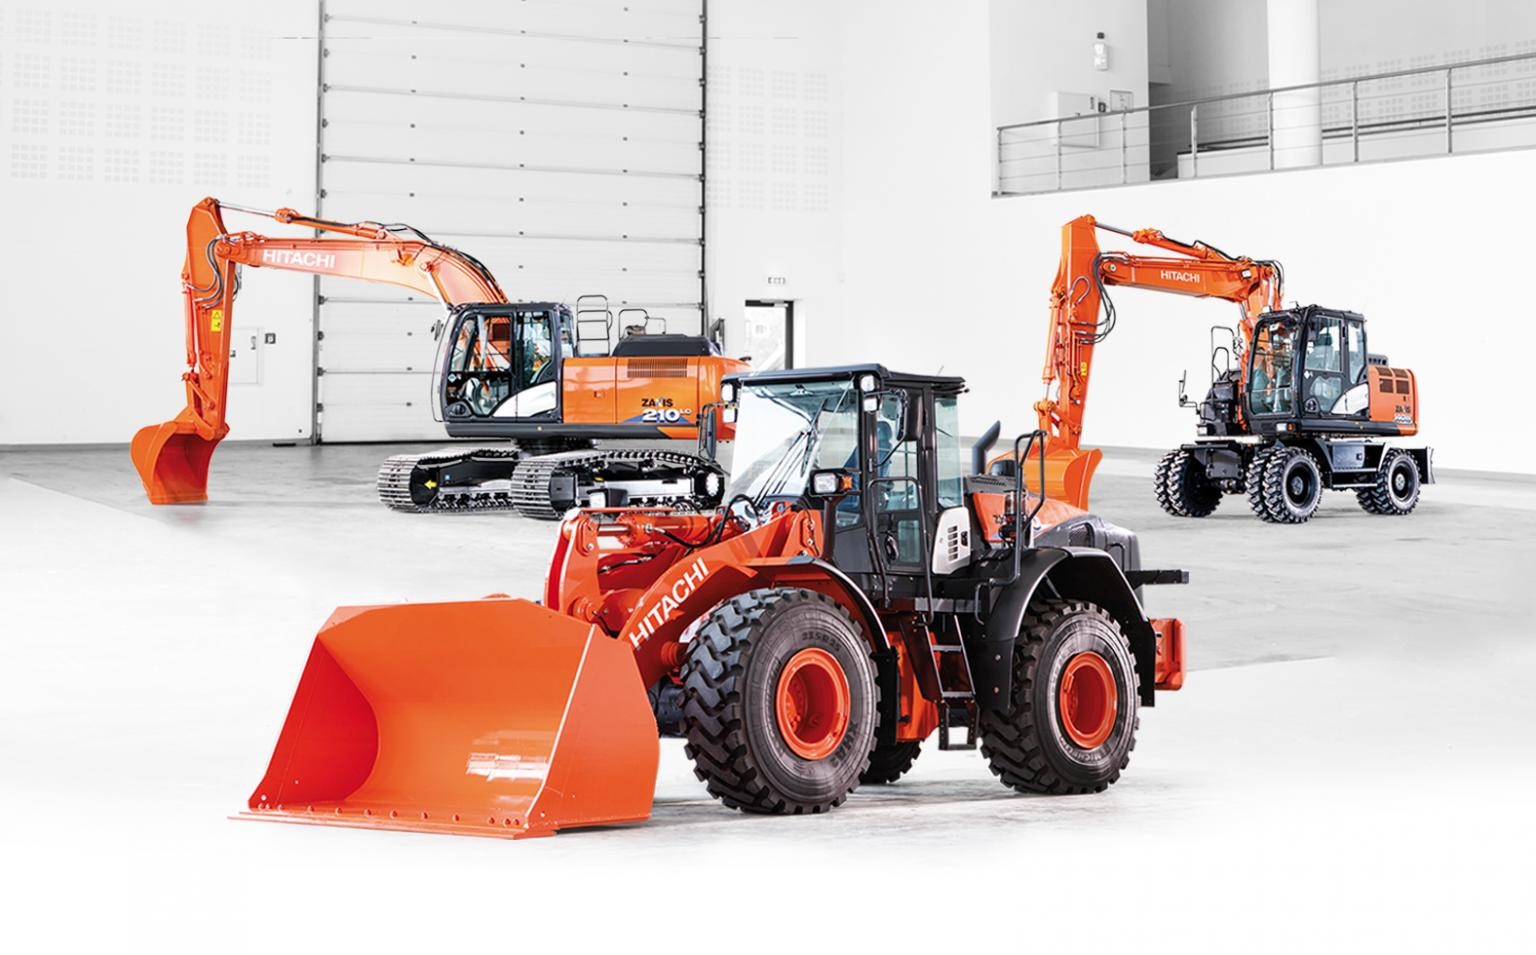 Hitachi Construction Machinery (HCME) has introduced a series of new models